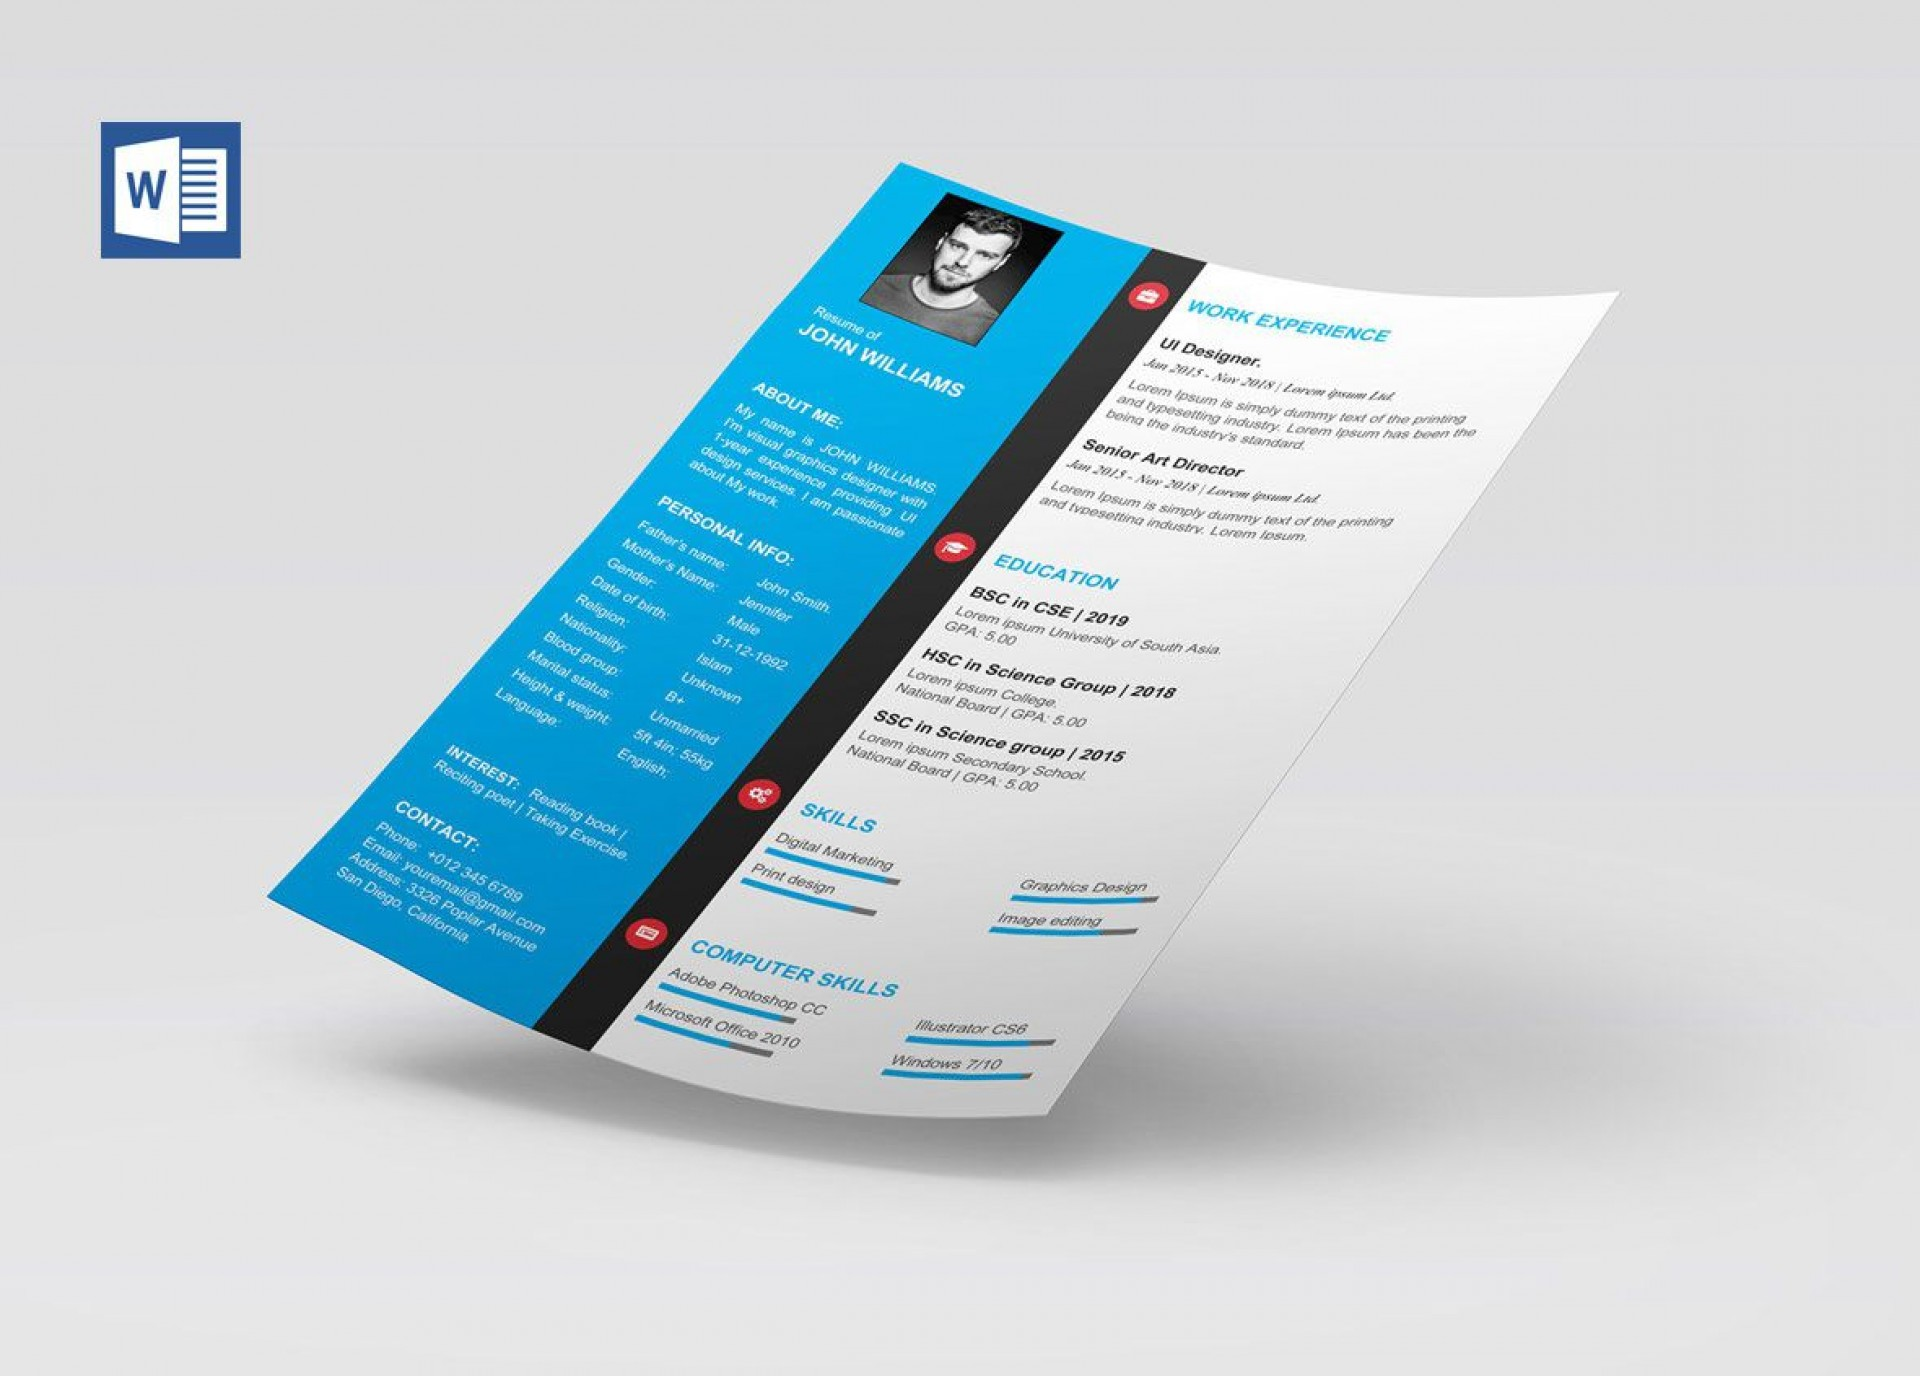 005 Striking Microsoft Word Free Template Concept  Templates For Report Invoice Uk Download1920